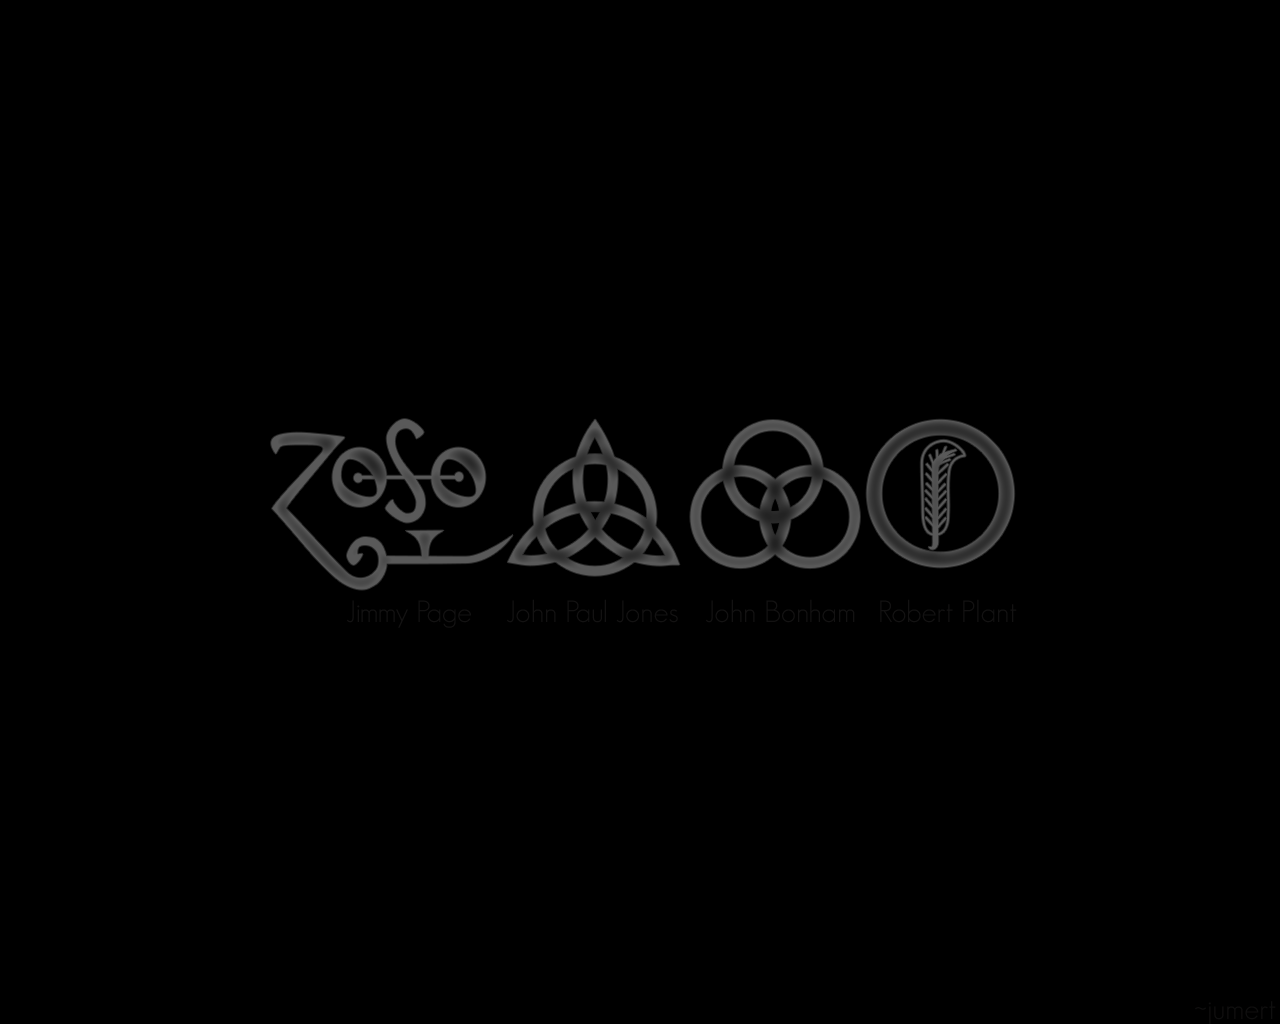 Led Zeppelin Symbol Meanings Google Search Tattoo Ideas